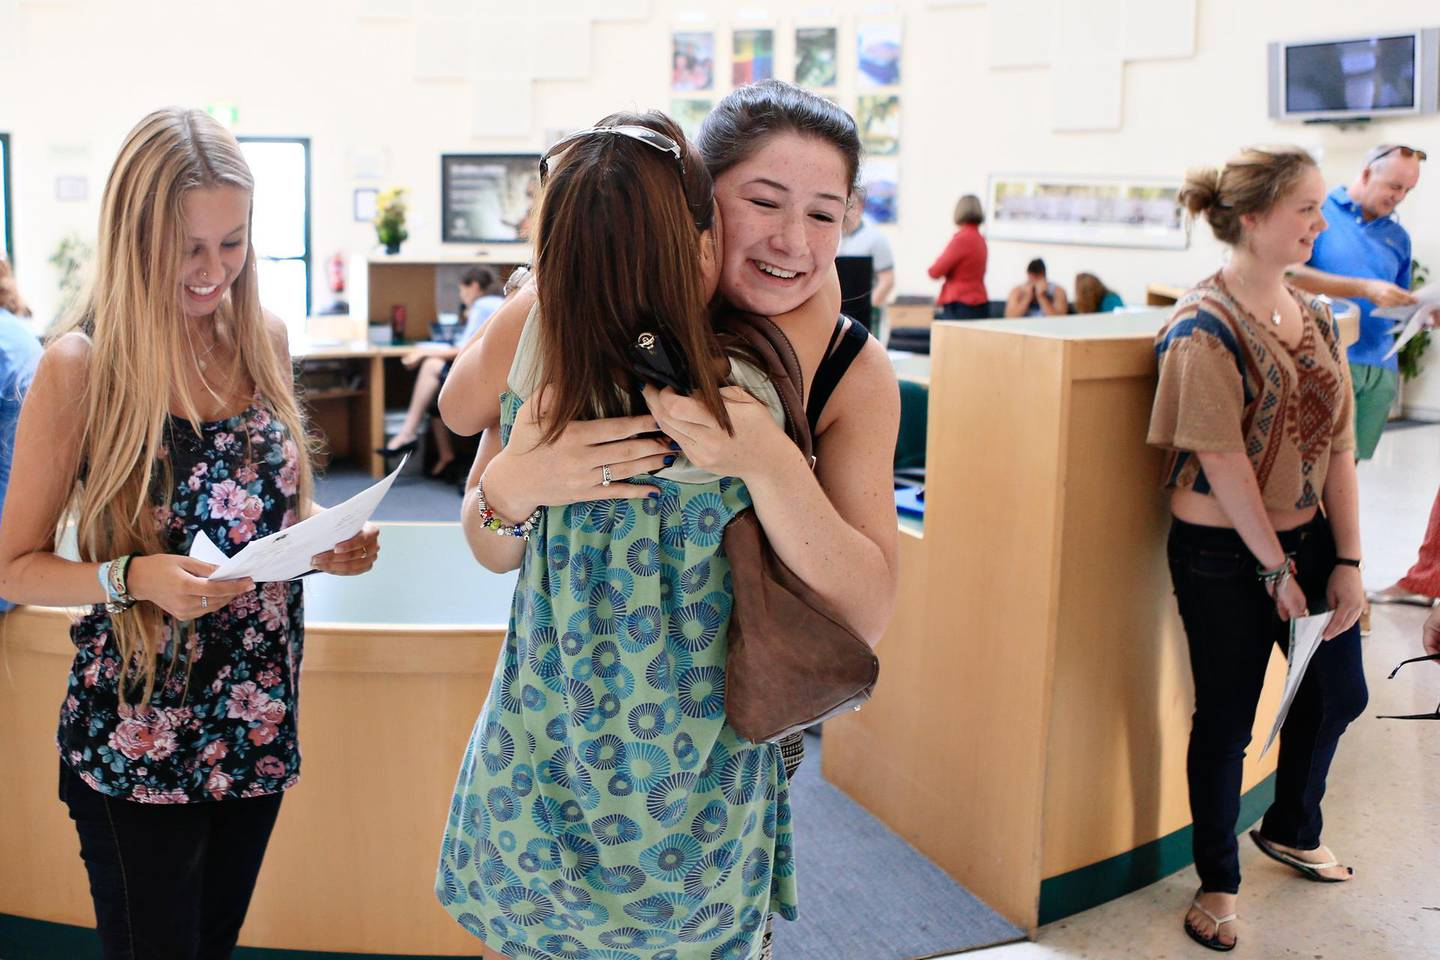 Dubai, August 15, 2013 -  (L to R) Emma Langley checks her year 13 A level results as her mother, Nicky Langley, embraces her classmate, Alice Taylor at Jumeirah College in Dubai, August 15, 2013. (Photo by: Sarah Dea/The National, Story by: Caline Malek) *** Local Caption ***  SDEA150813-A-Levels_Dubai03.JPG